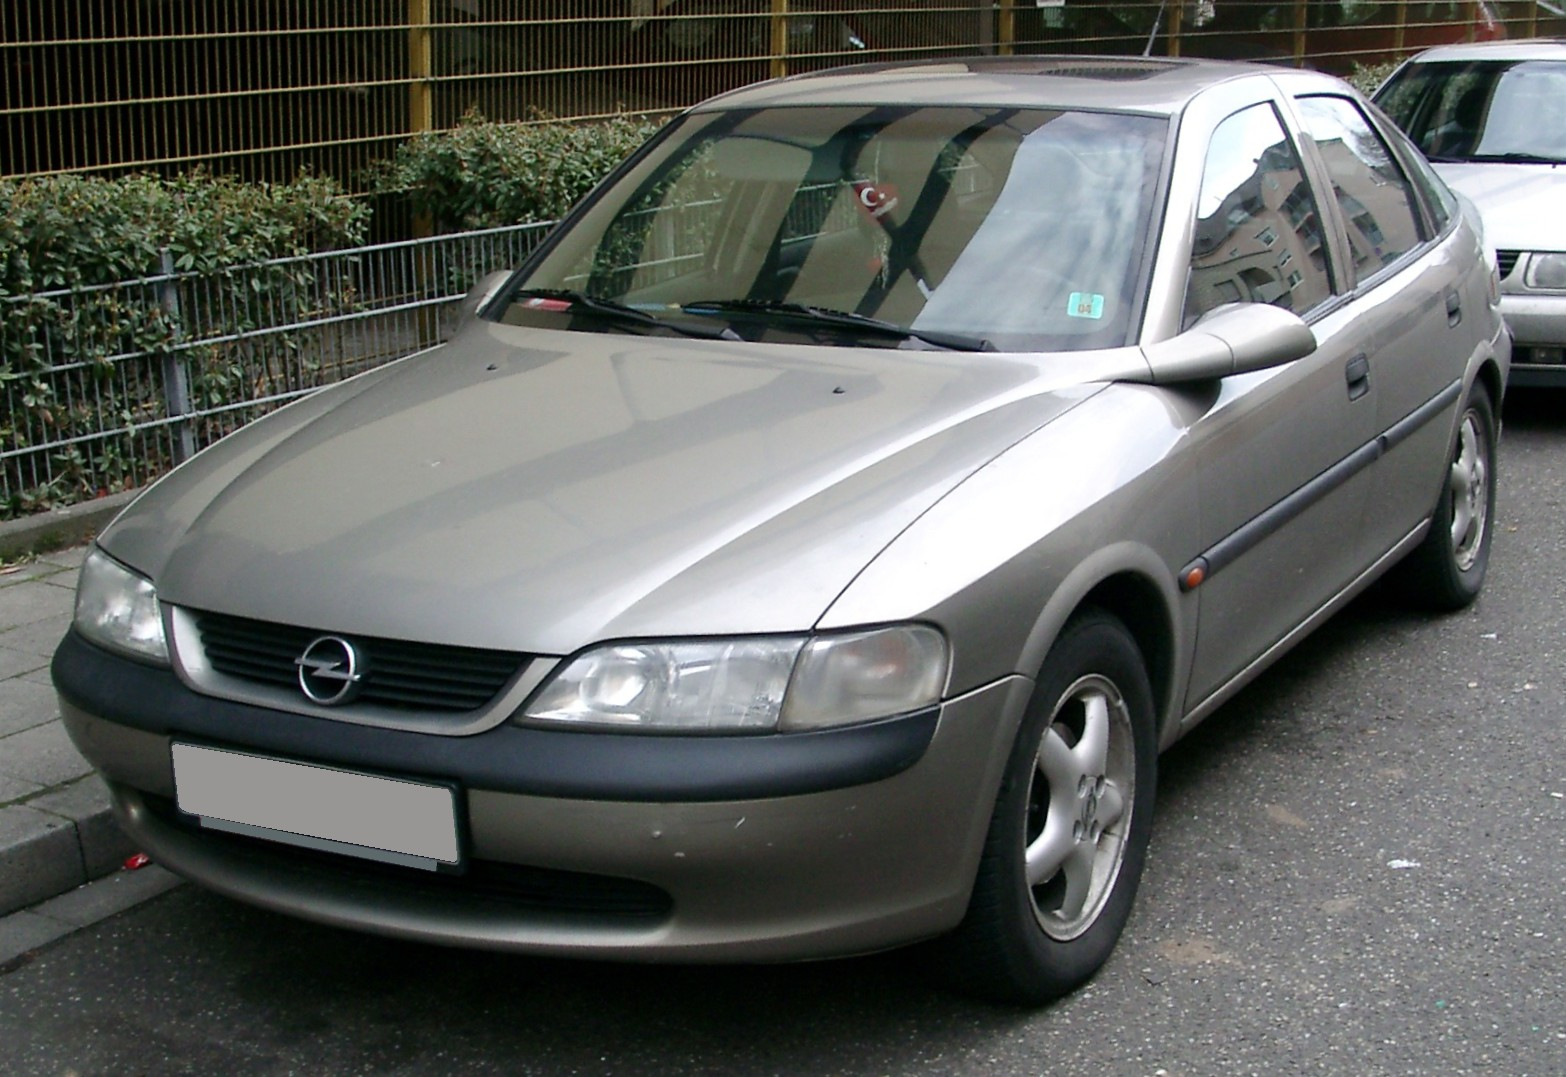 1999 opel vectra b cc pictures information and specs. Black Bedroom Furniture Sets. Home Design Ideas